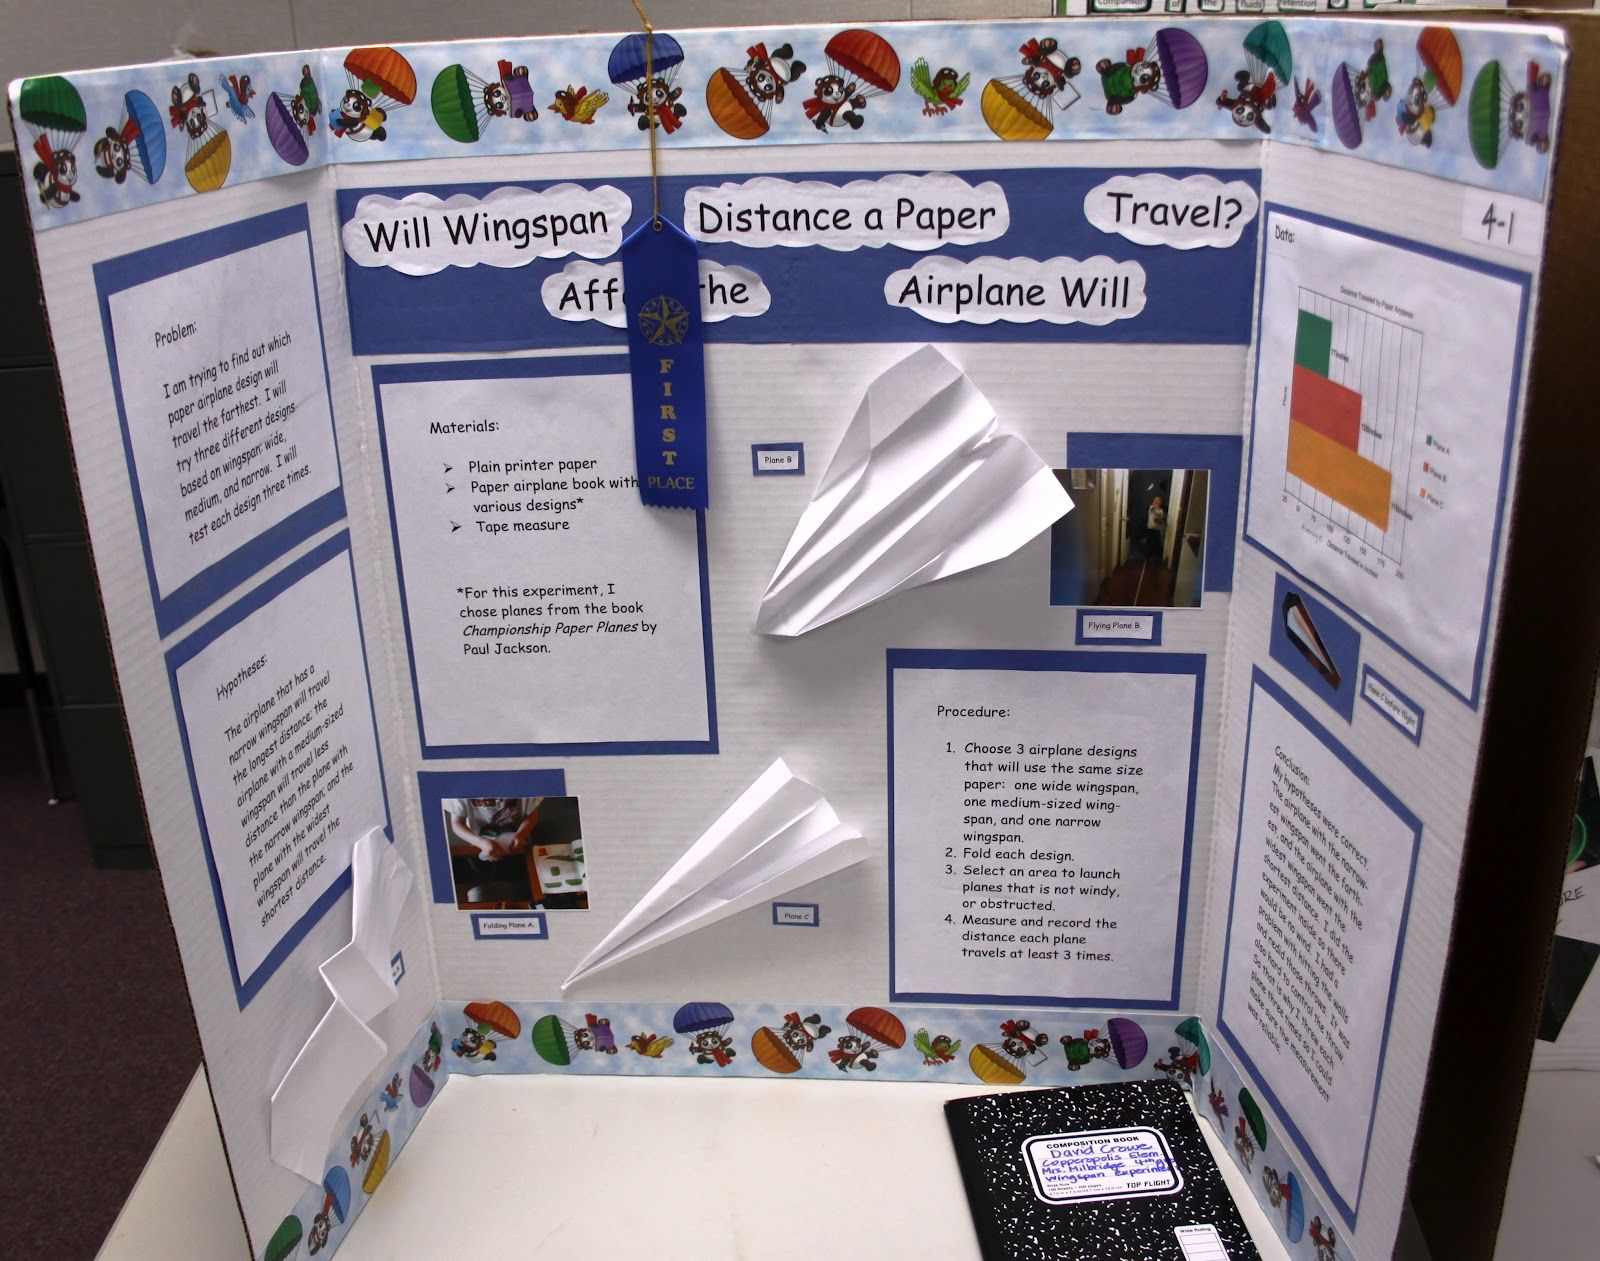 paper science projects Explore paper airplane science projects, aerodynamics or paper airplane science projects free download, models, experiments, 2015 latest wind turbine science fair.